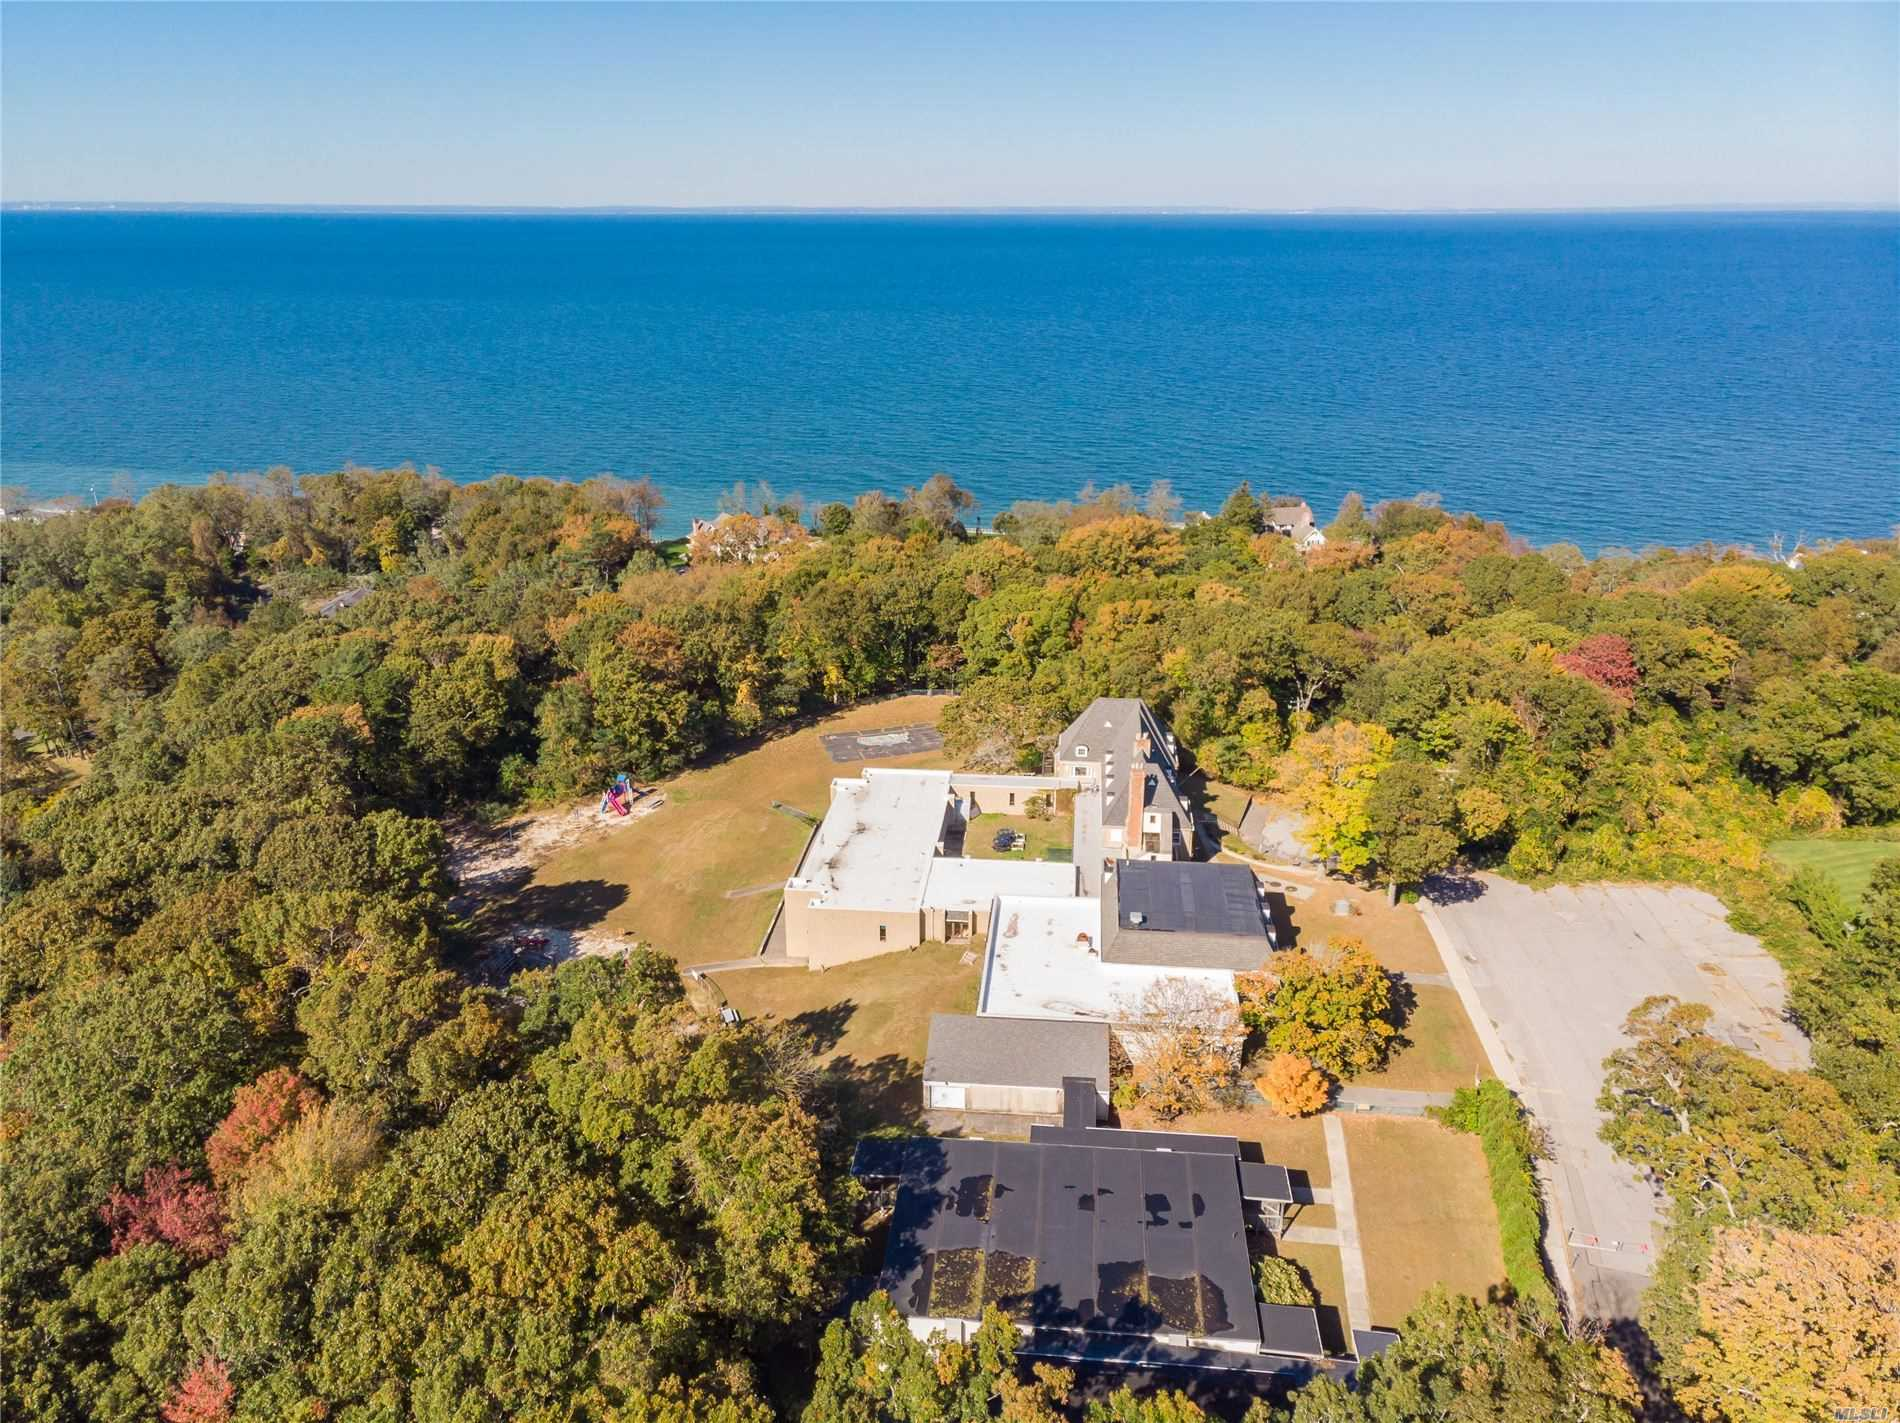 18 Tower Hill Rd, Shoreham, New York 11786, ,Land,For Sale,Tower Hill Rd,3178605